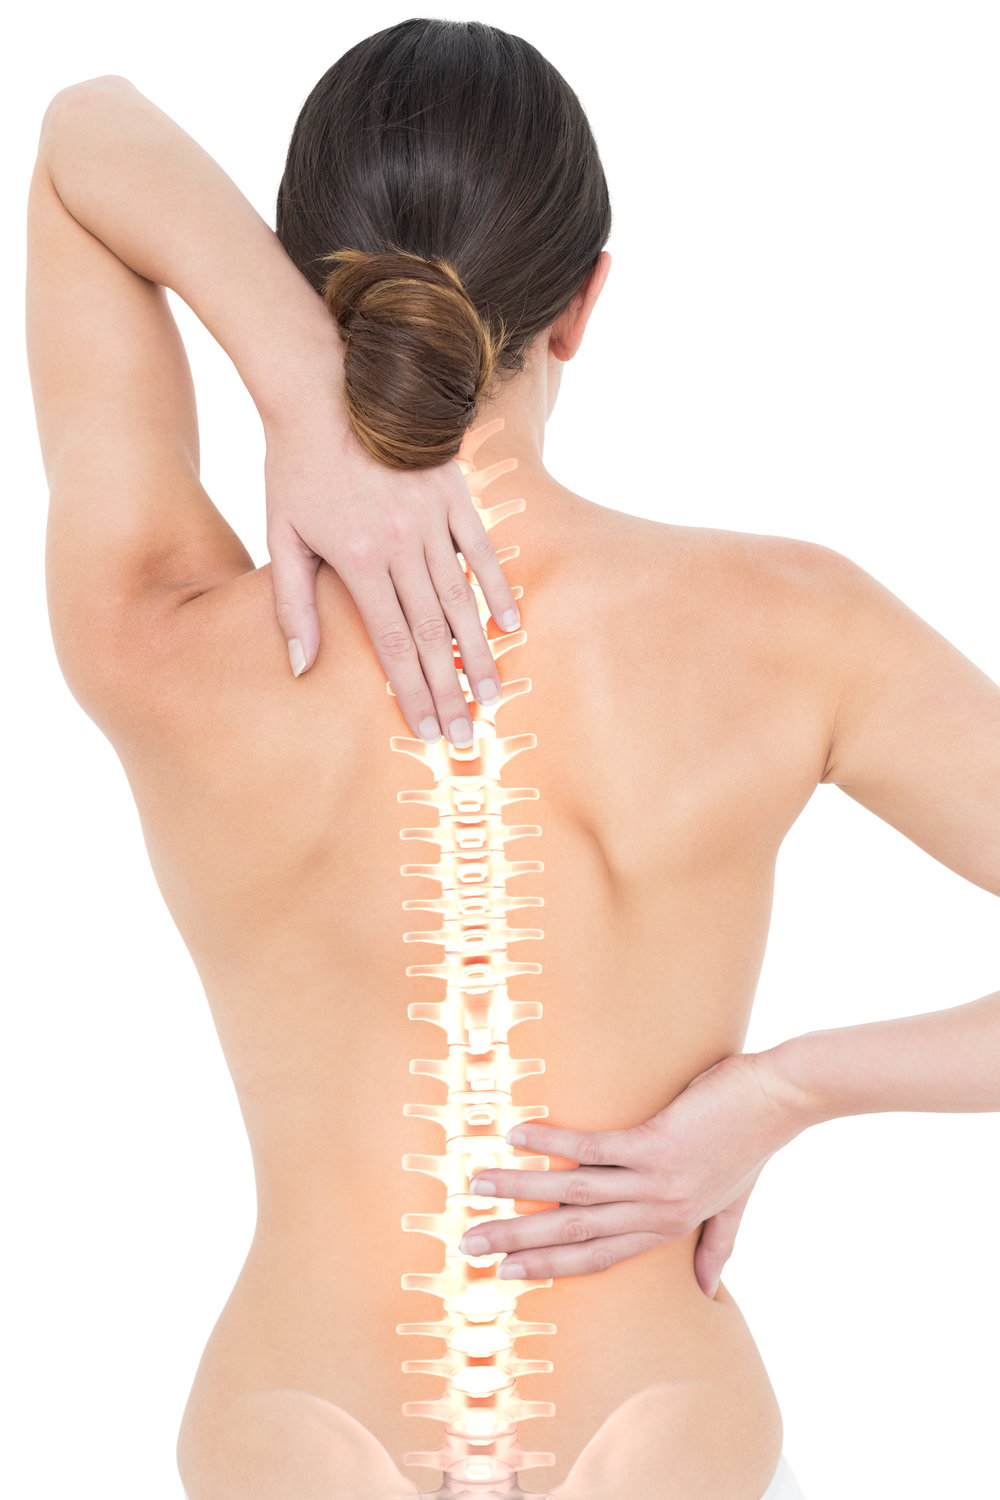 womans spine.jpg